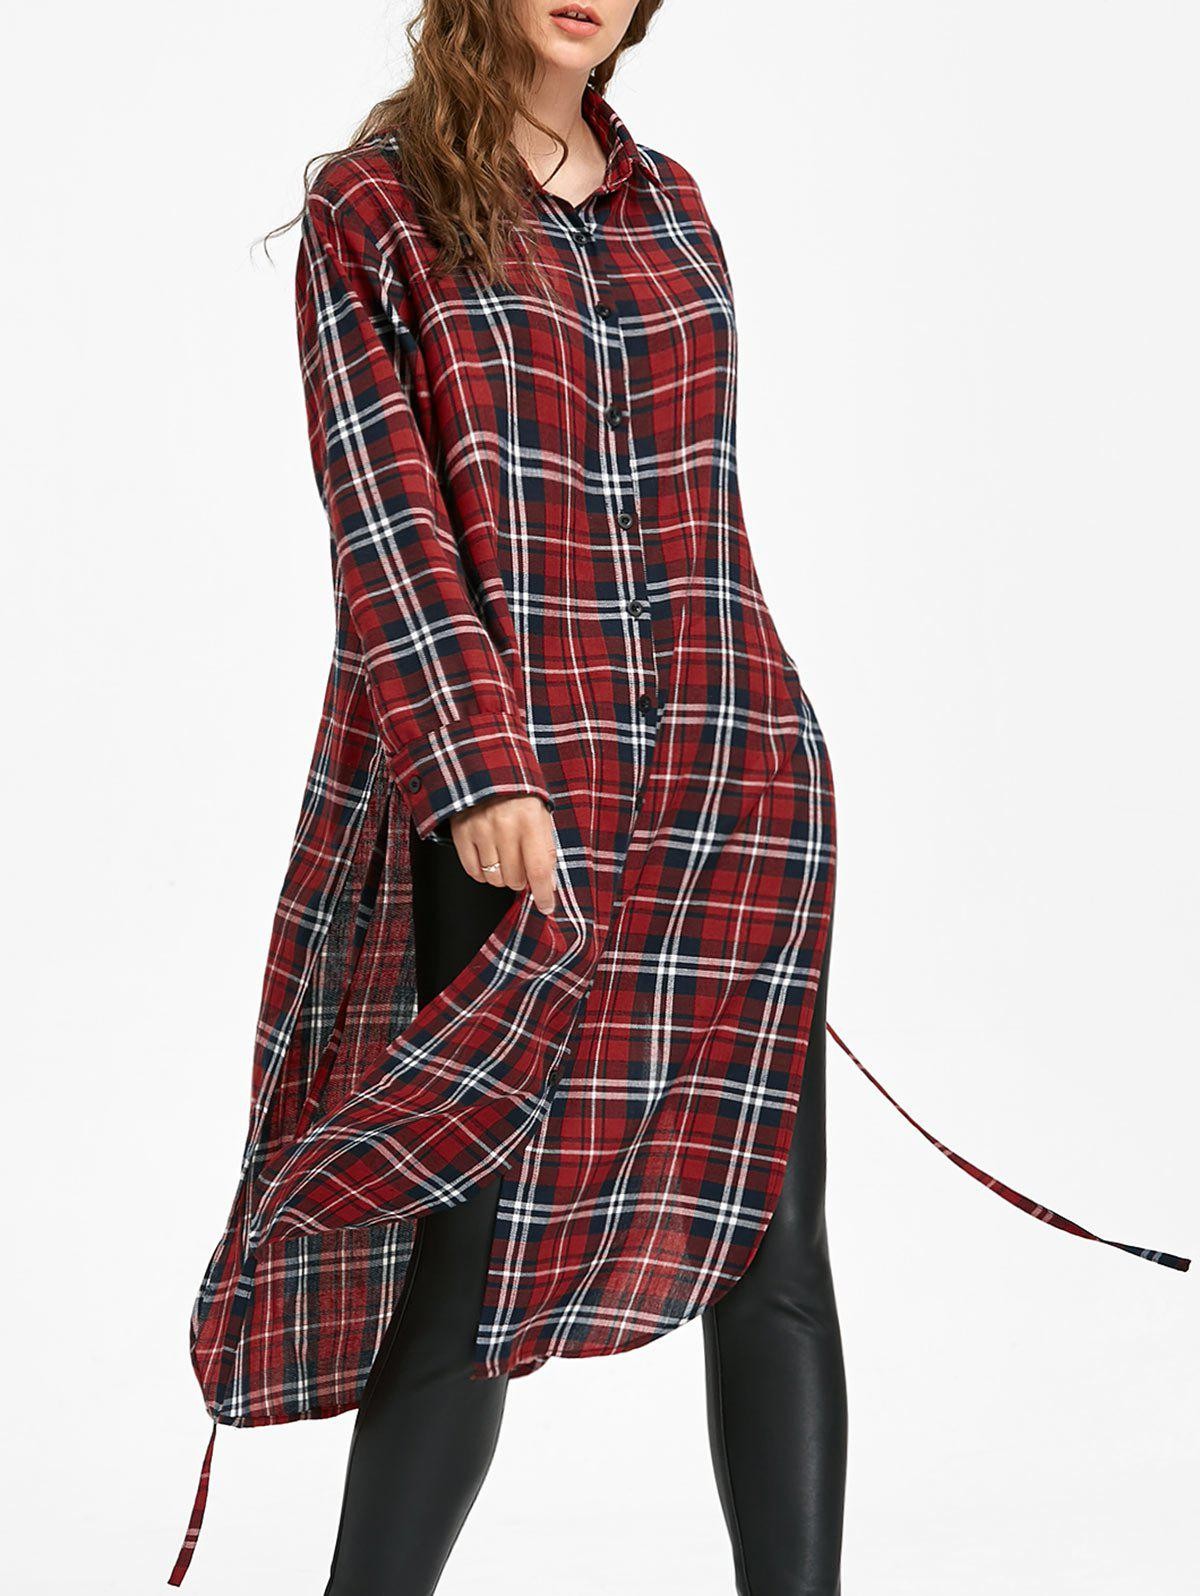 Long Sleeve Button Down Checked Dress with Tie contrast pocket long sleeve tie dye design button down shirt